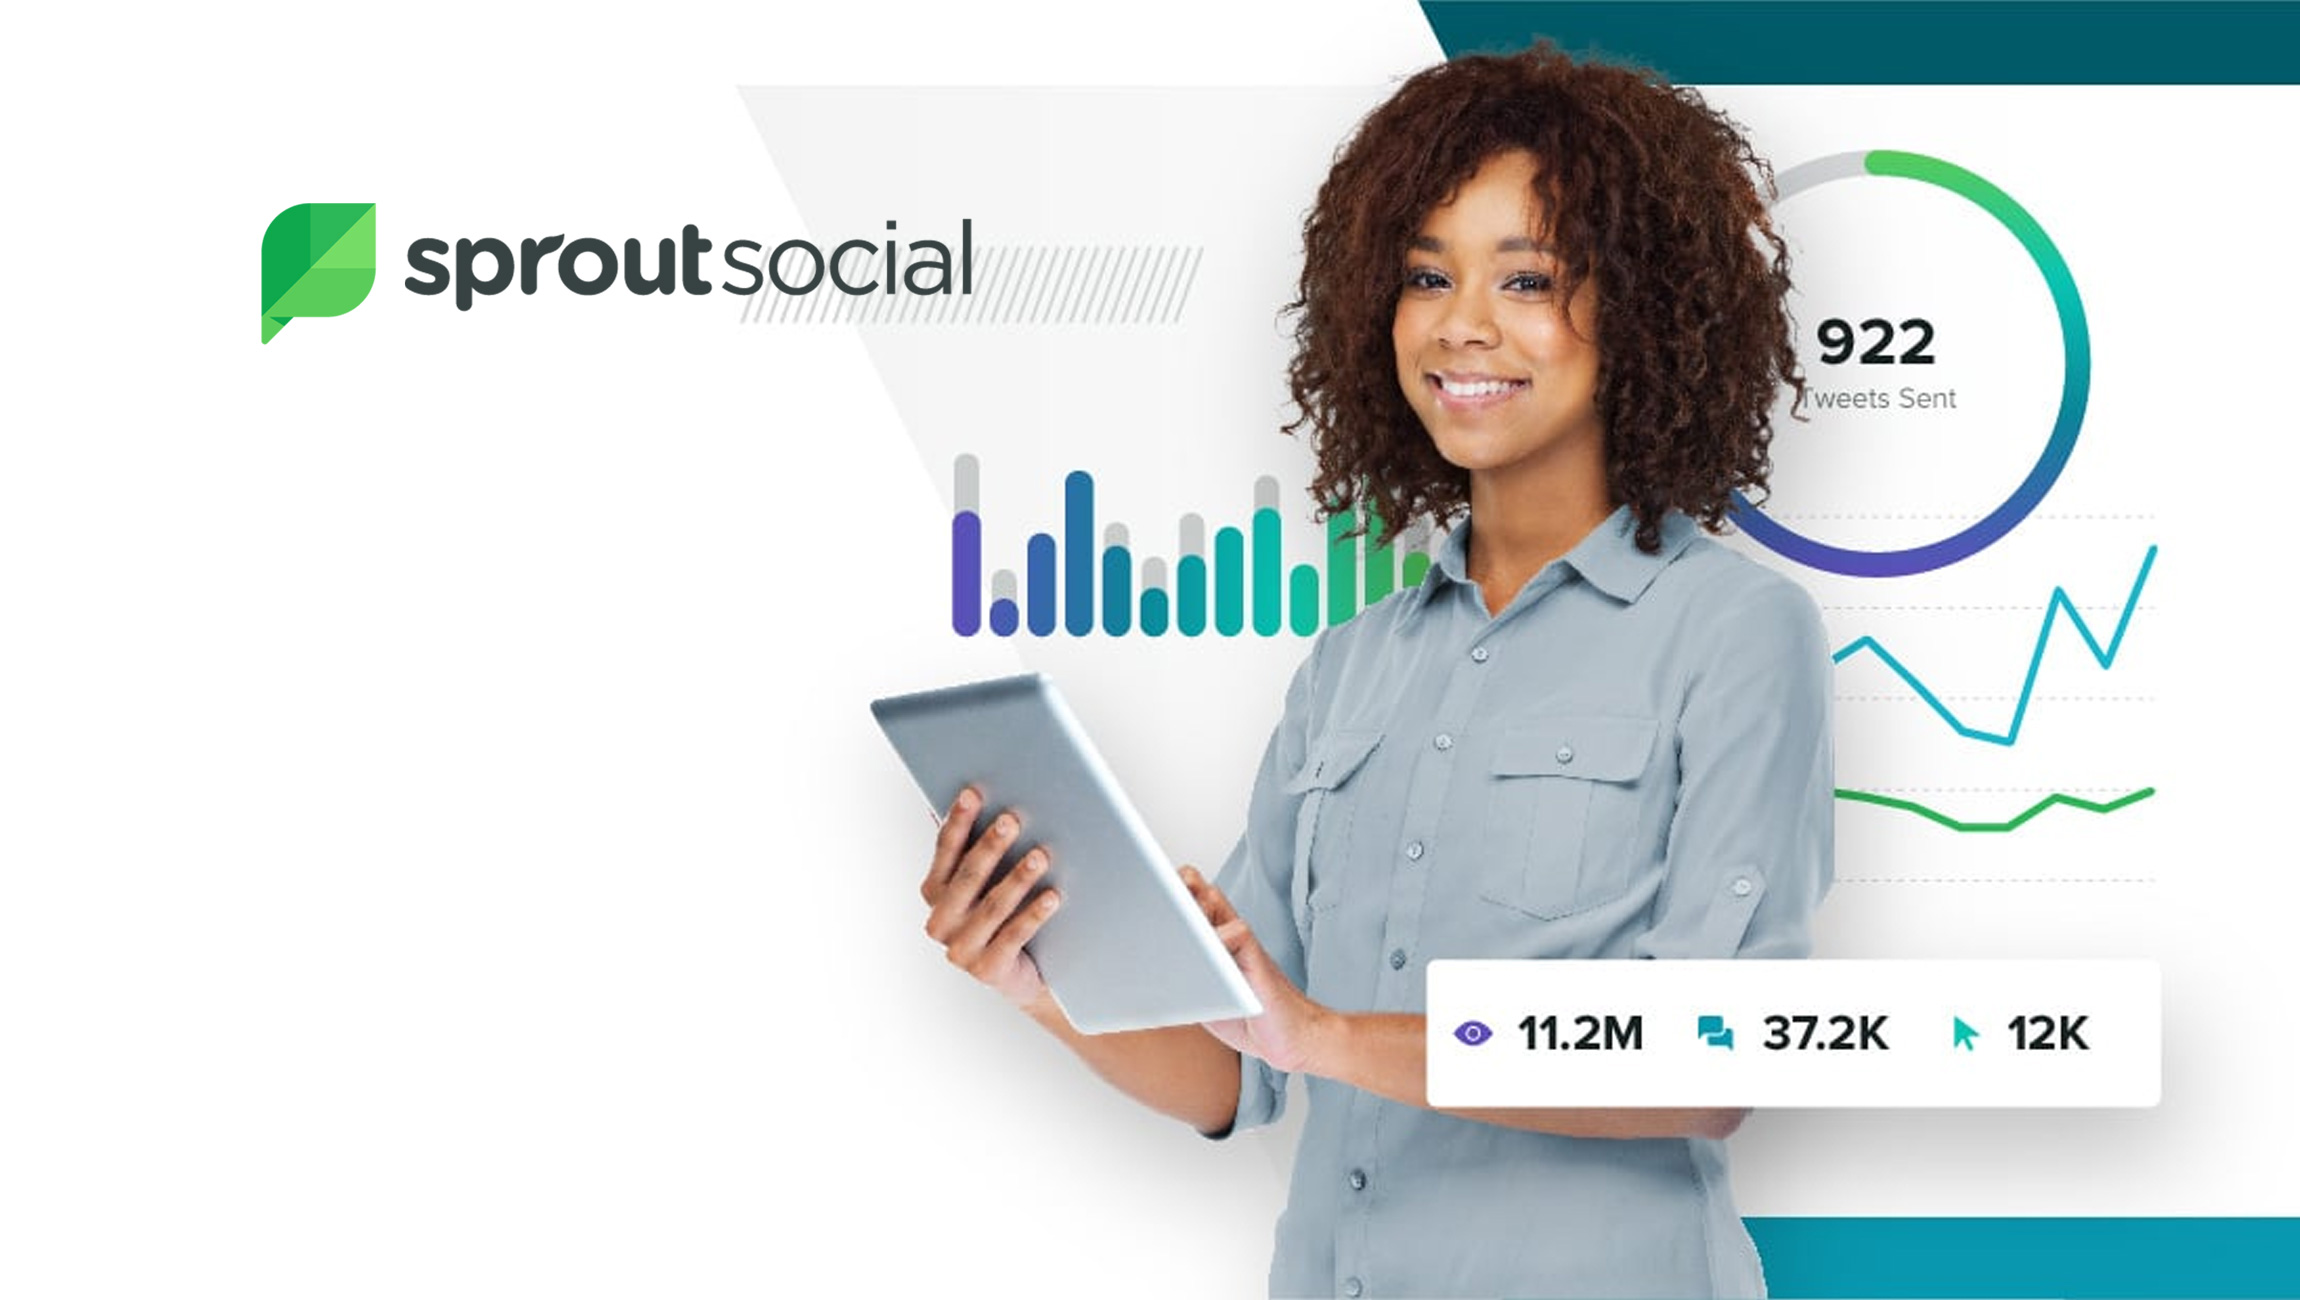 New Report Looks At The Best Times To Post On Each Platform, Based On Insights From 20,000 Users